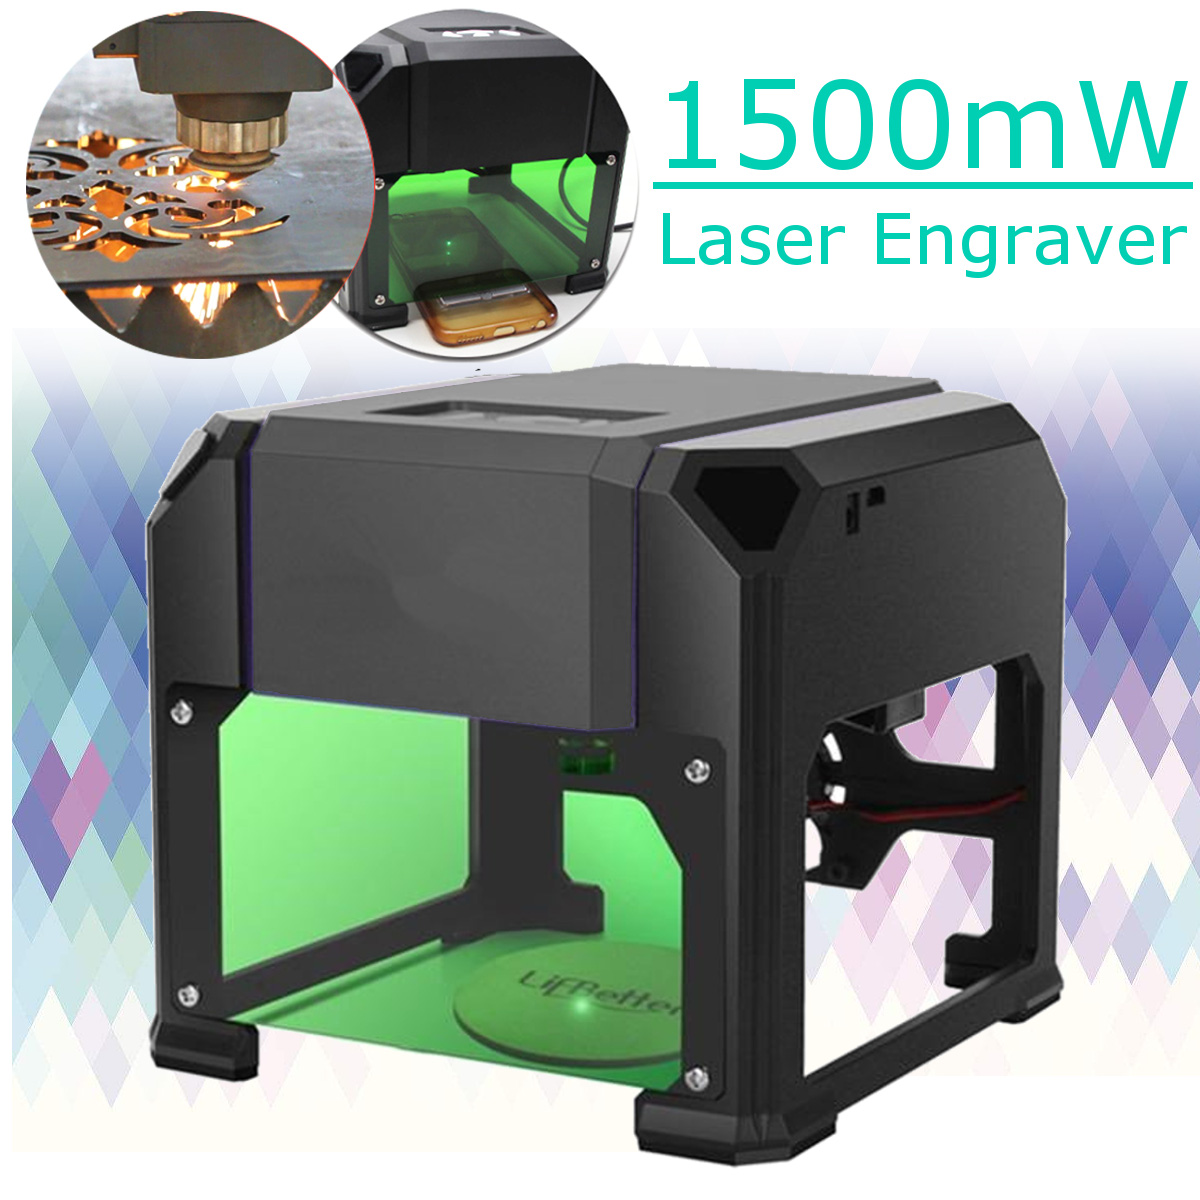 1500mw USB Desktop Laser Engraving Machine DIY Logo Marking Engraver CNC Laser Carving Machine 80x80mm Engraving Range joseph thomas le fanu guy deverell 1 гай деверелл 1 на английском языке